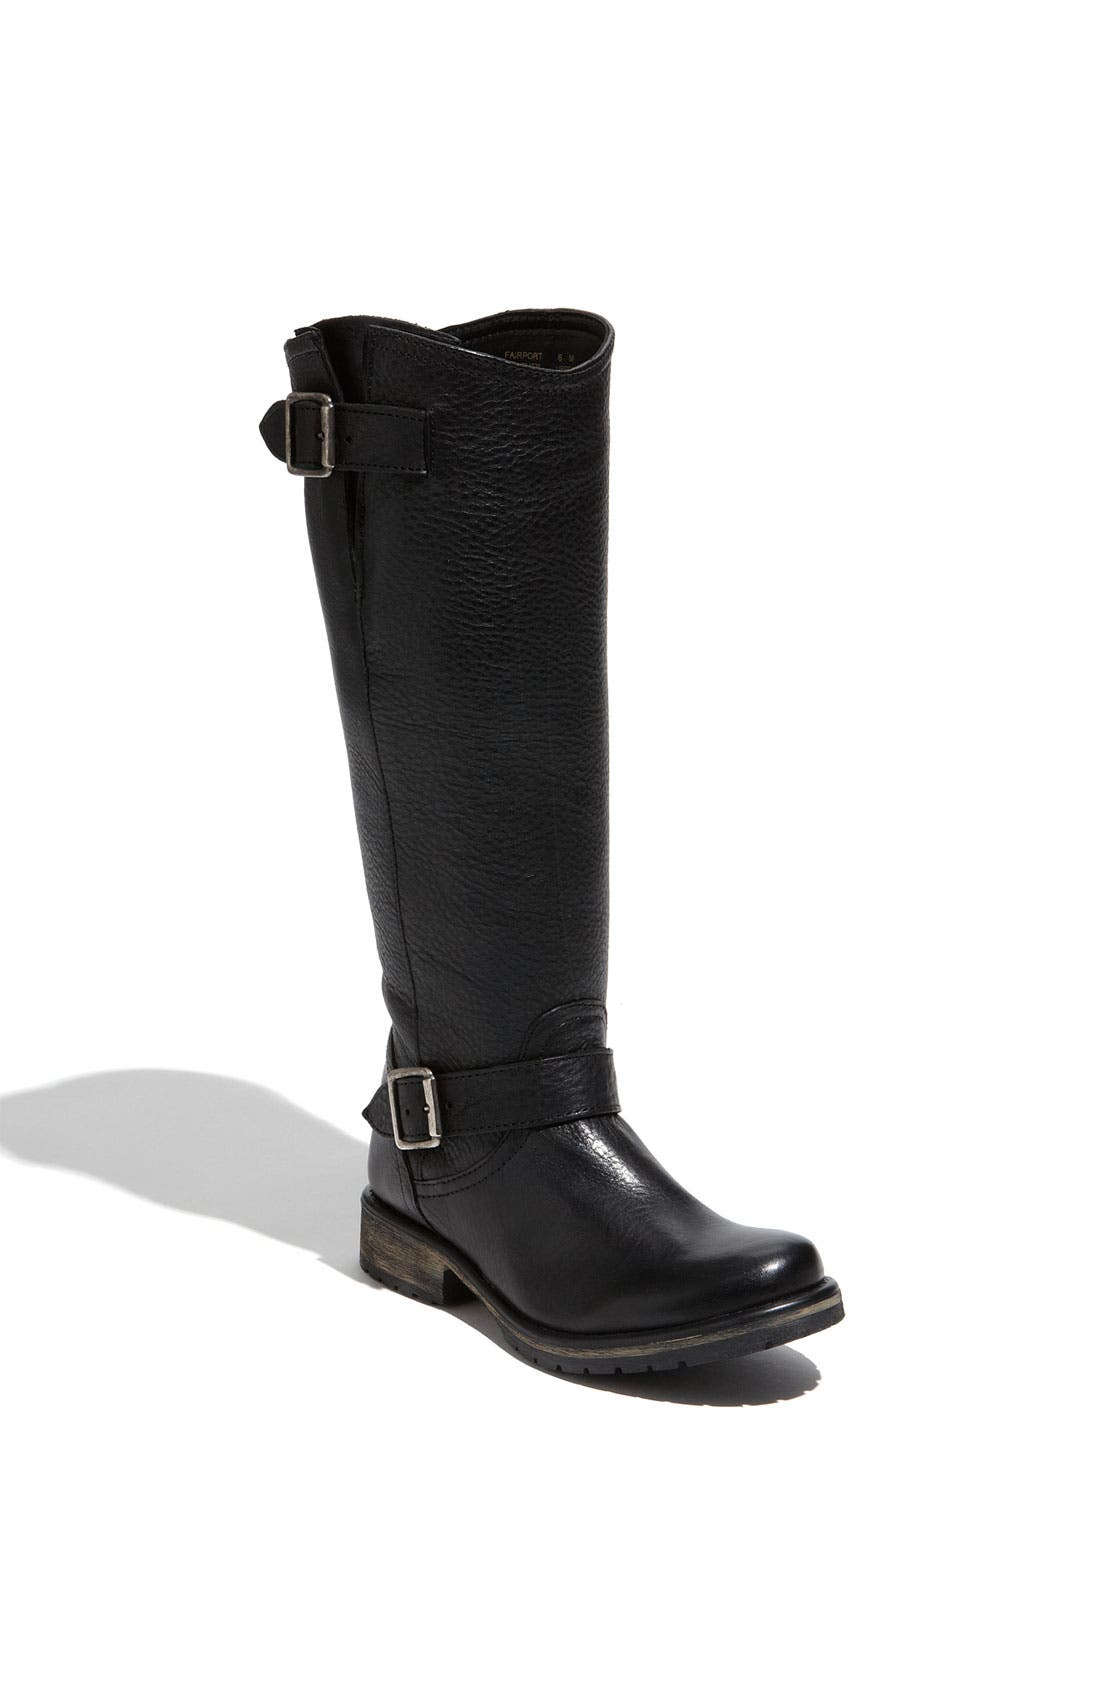 Alternate Image 1 Selected - Steve Madden 'Fairport' Boot